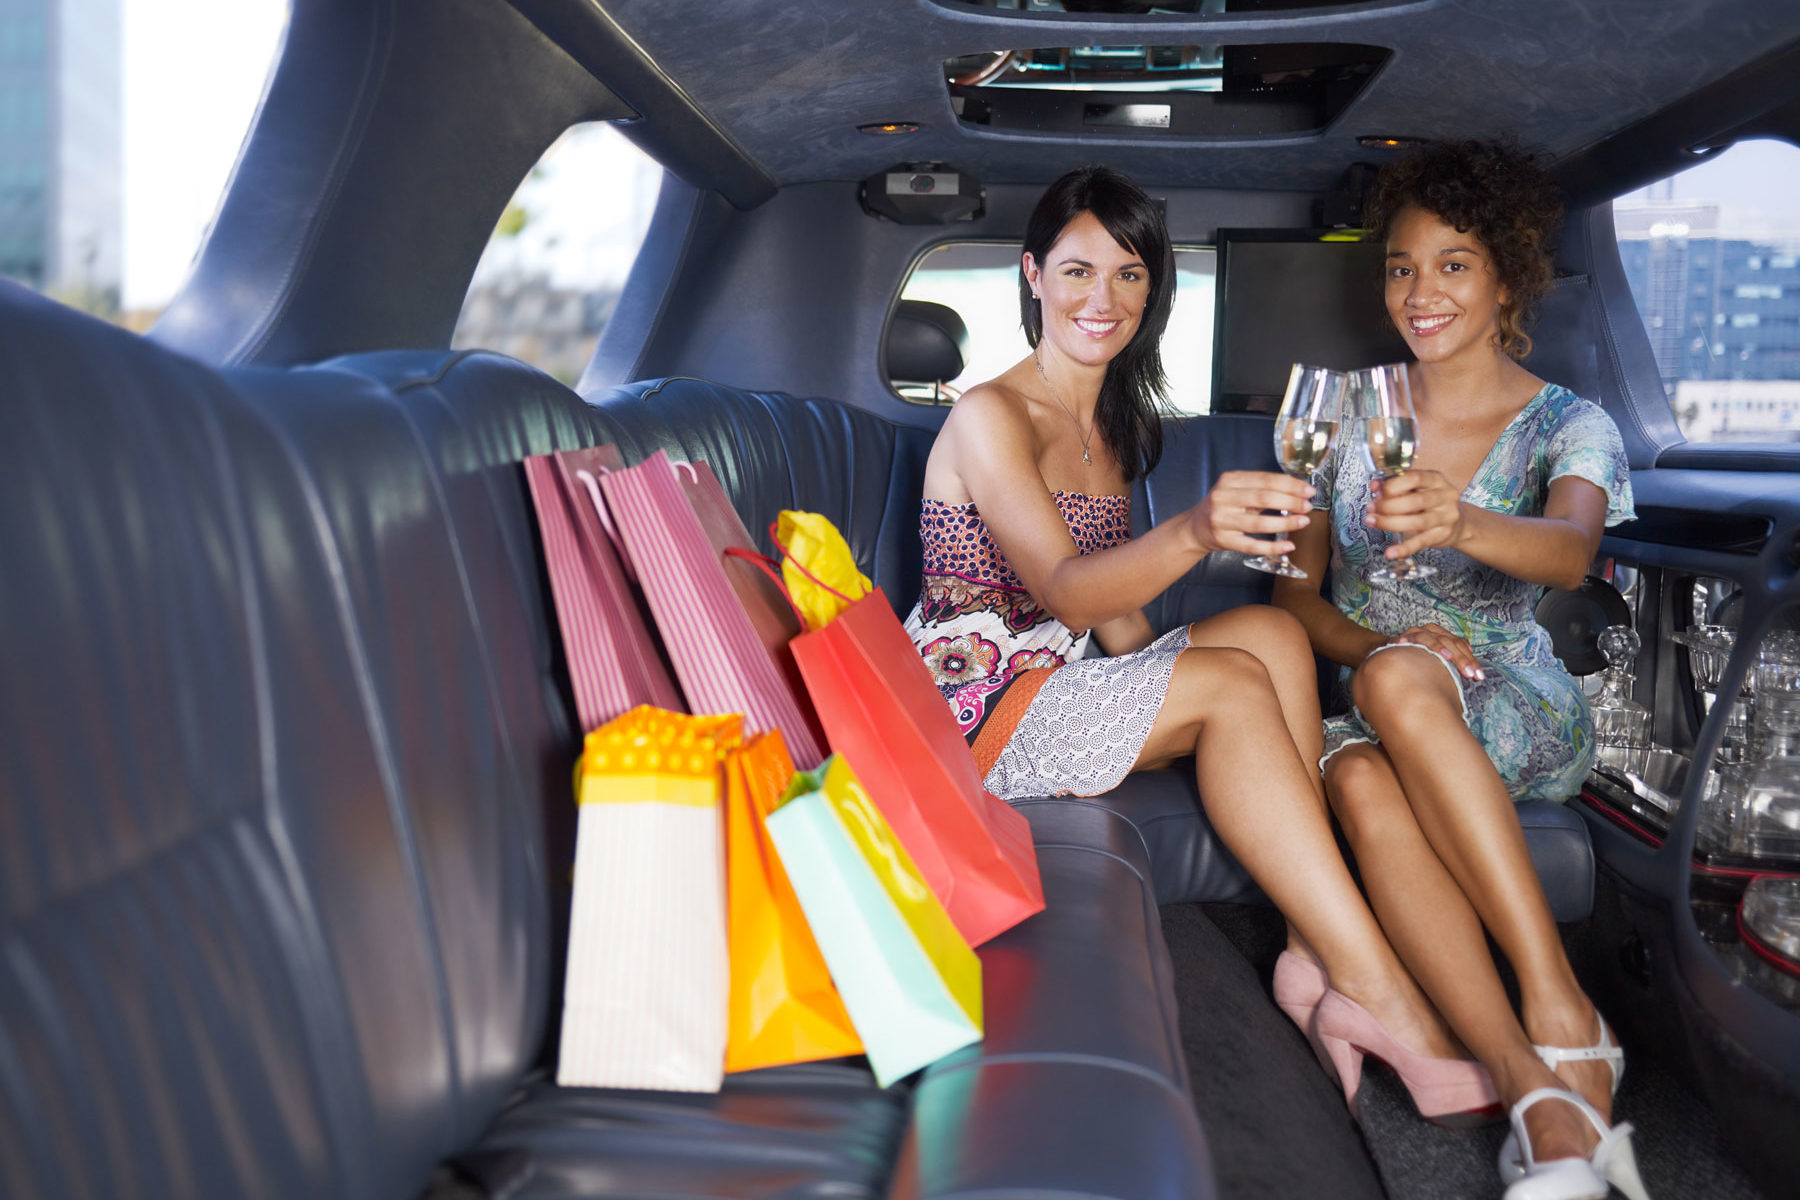 limo service transportation in Hill Country for shopping and a day out